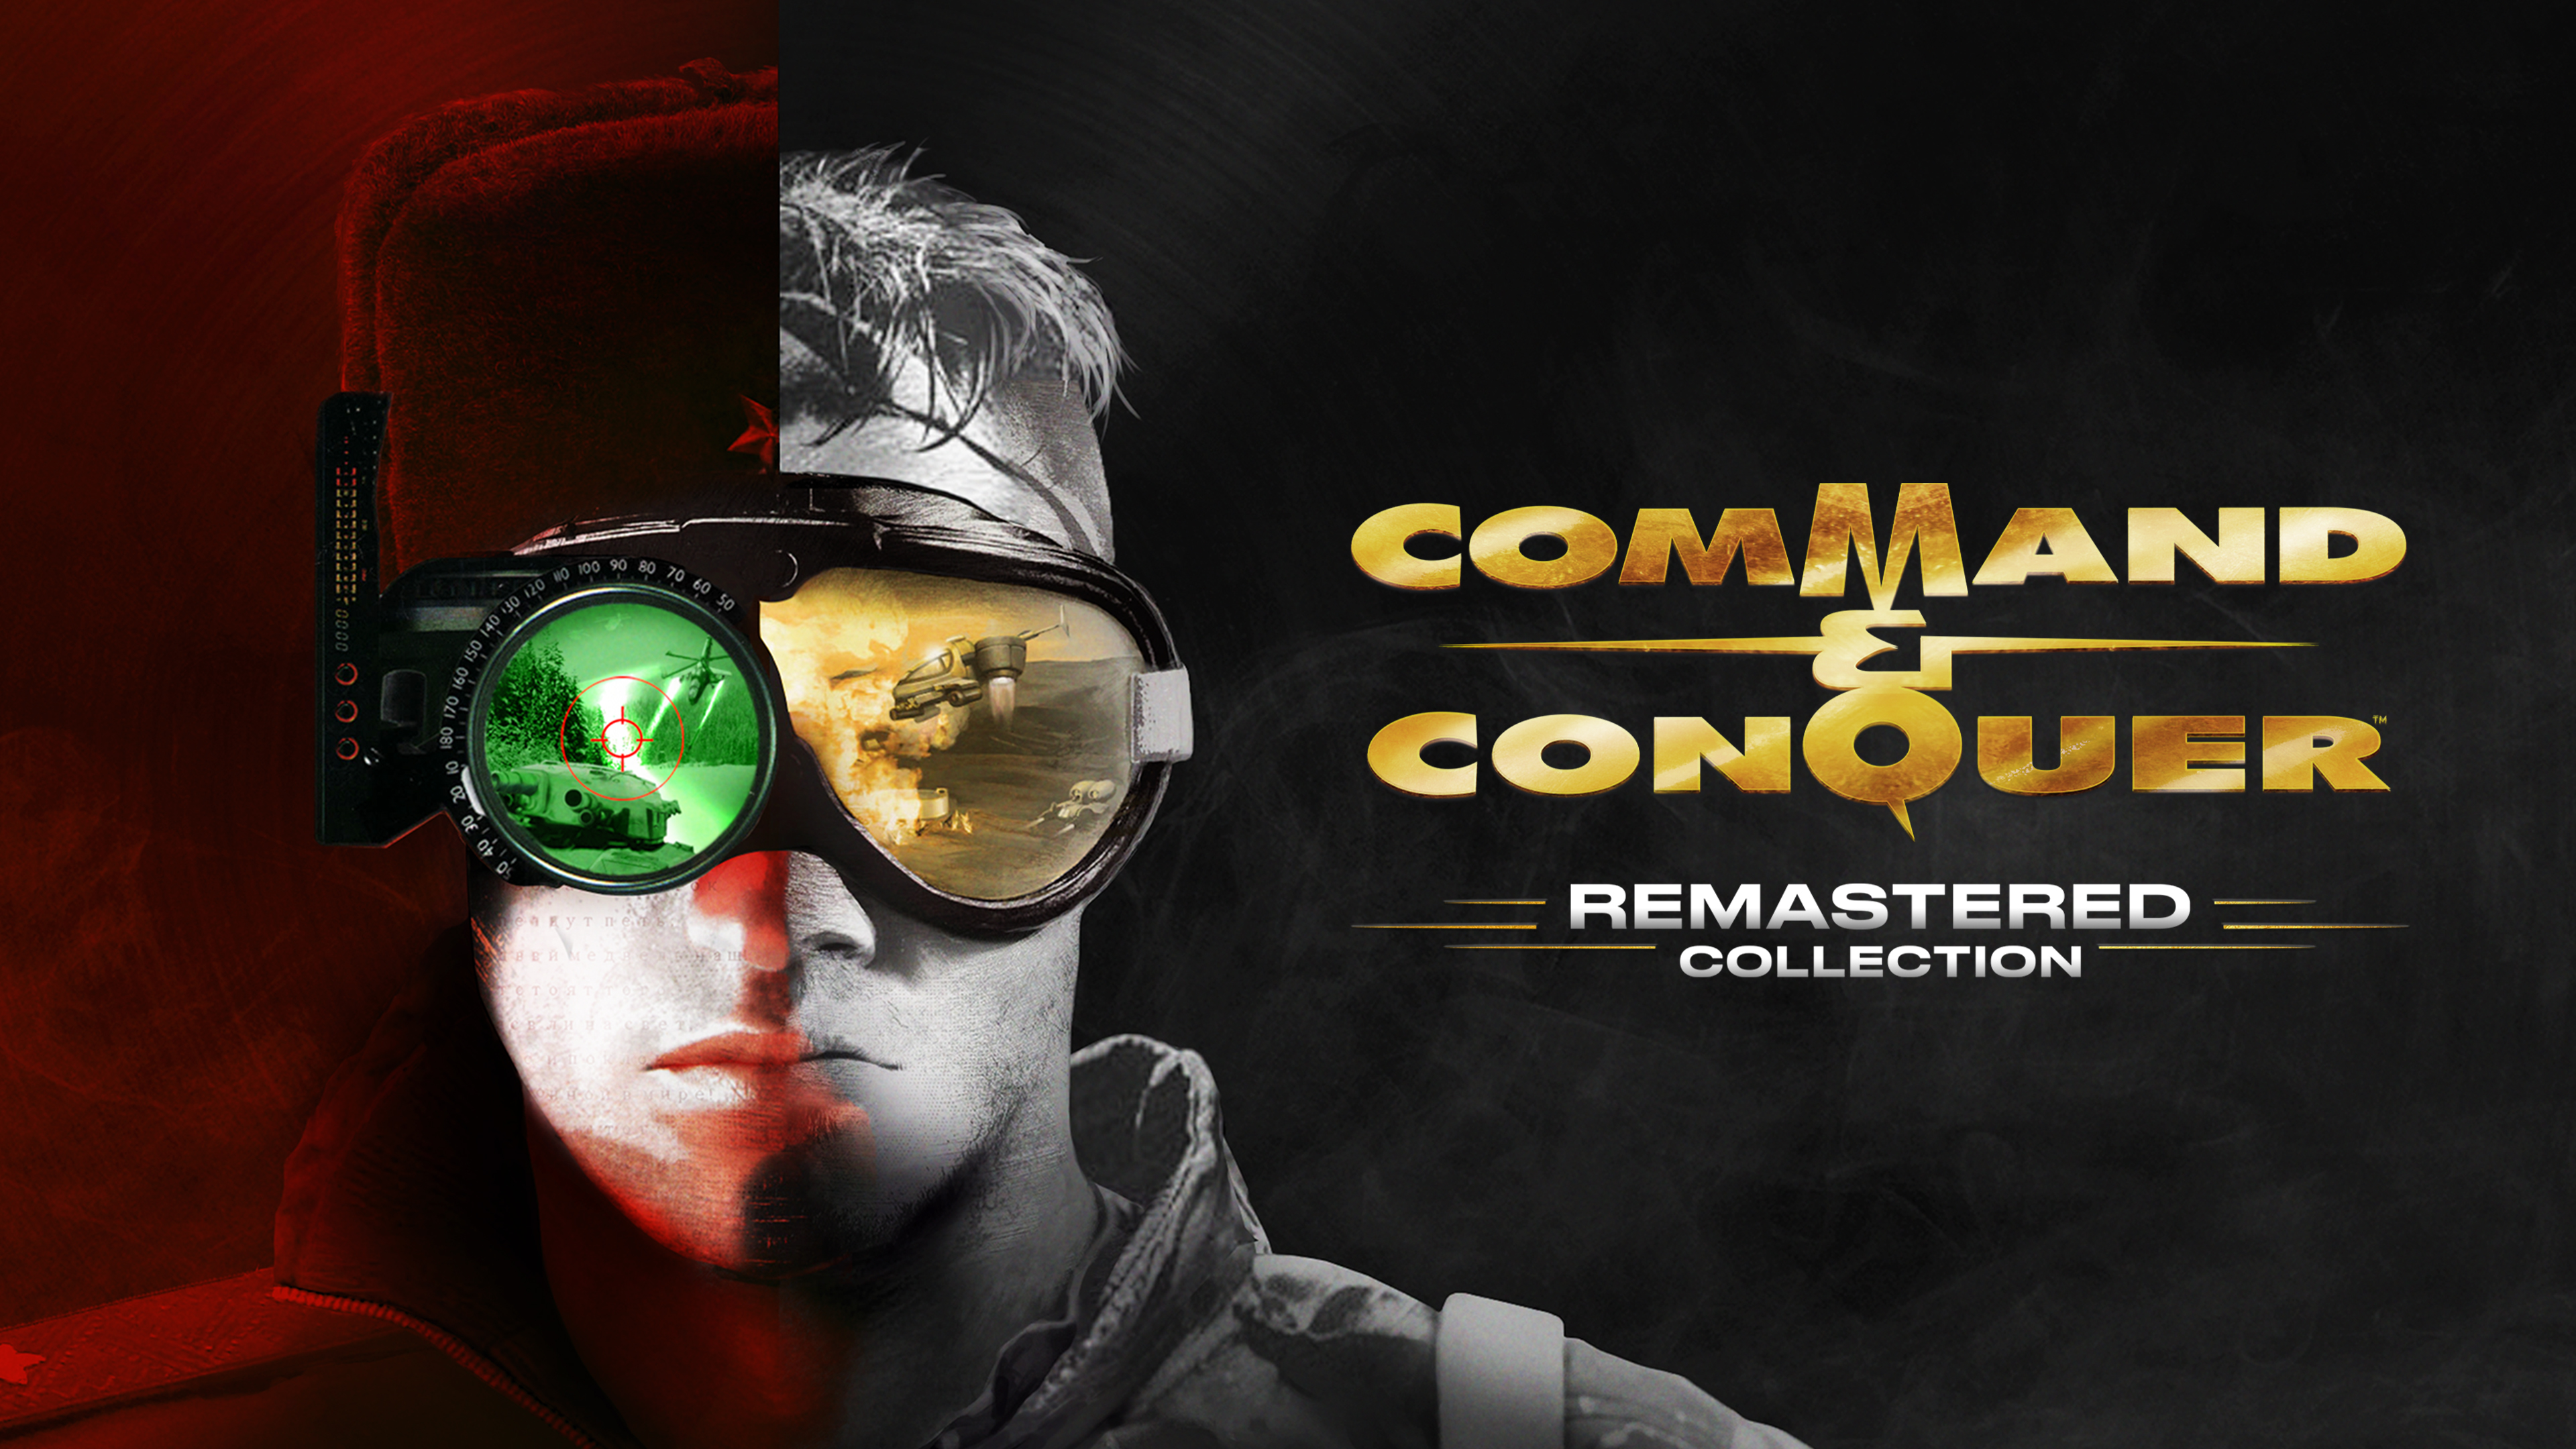 THE COMMAND & CONQUER REMASTERED COLLECTION IS AVAILABLE NOW